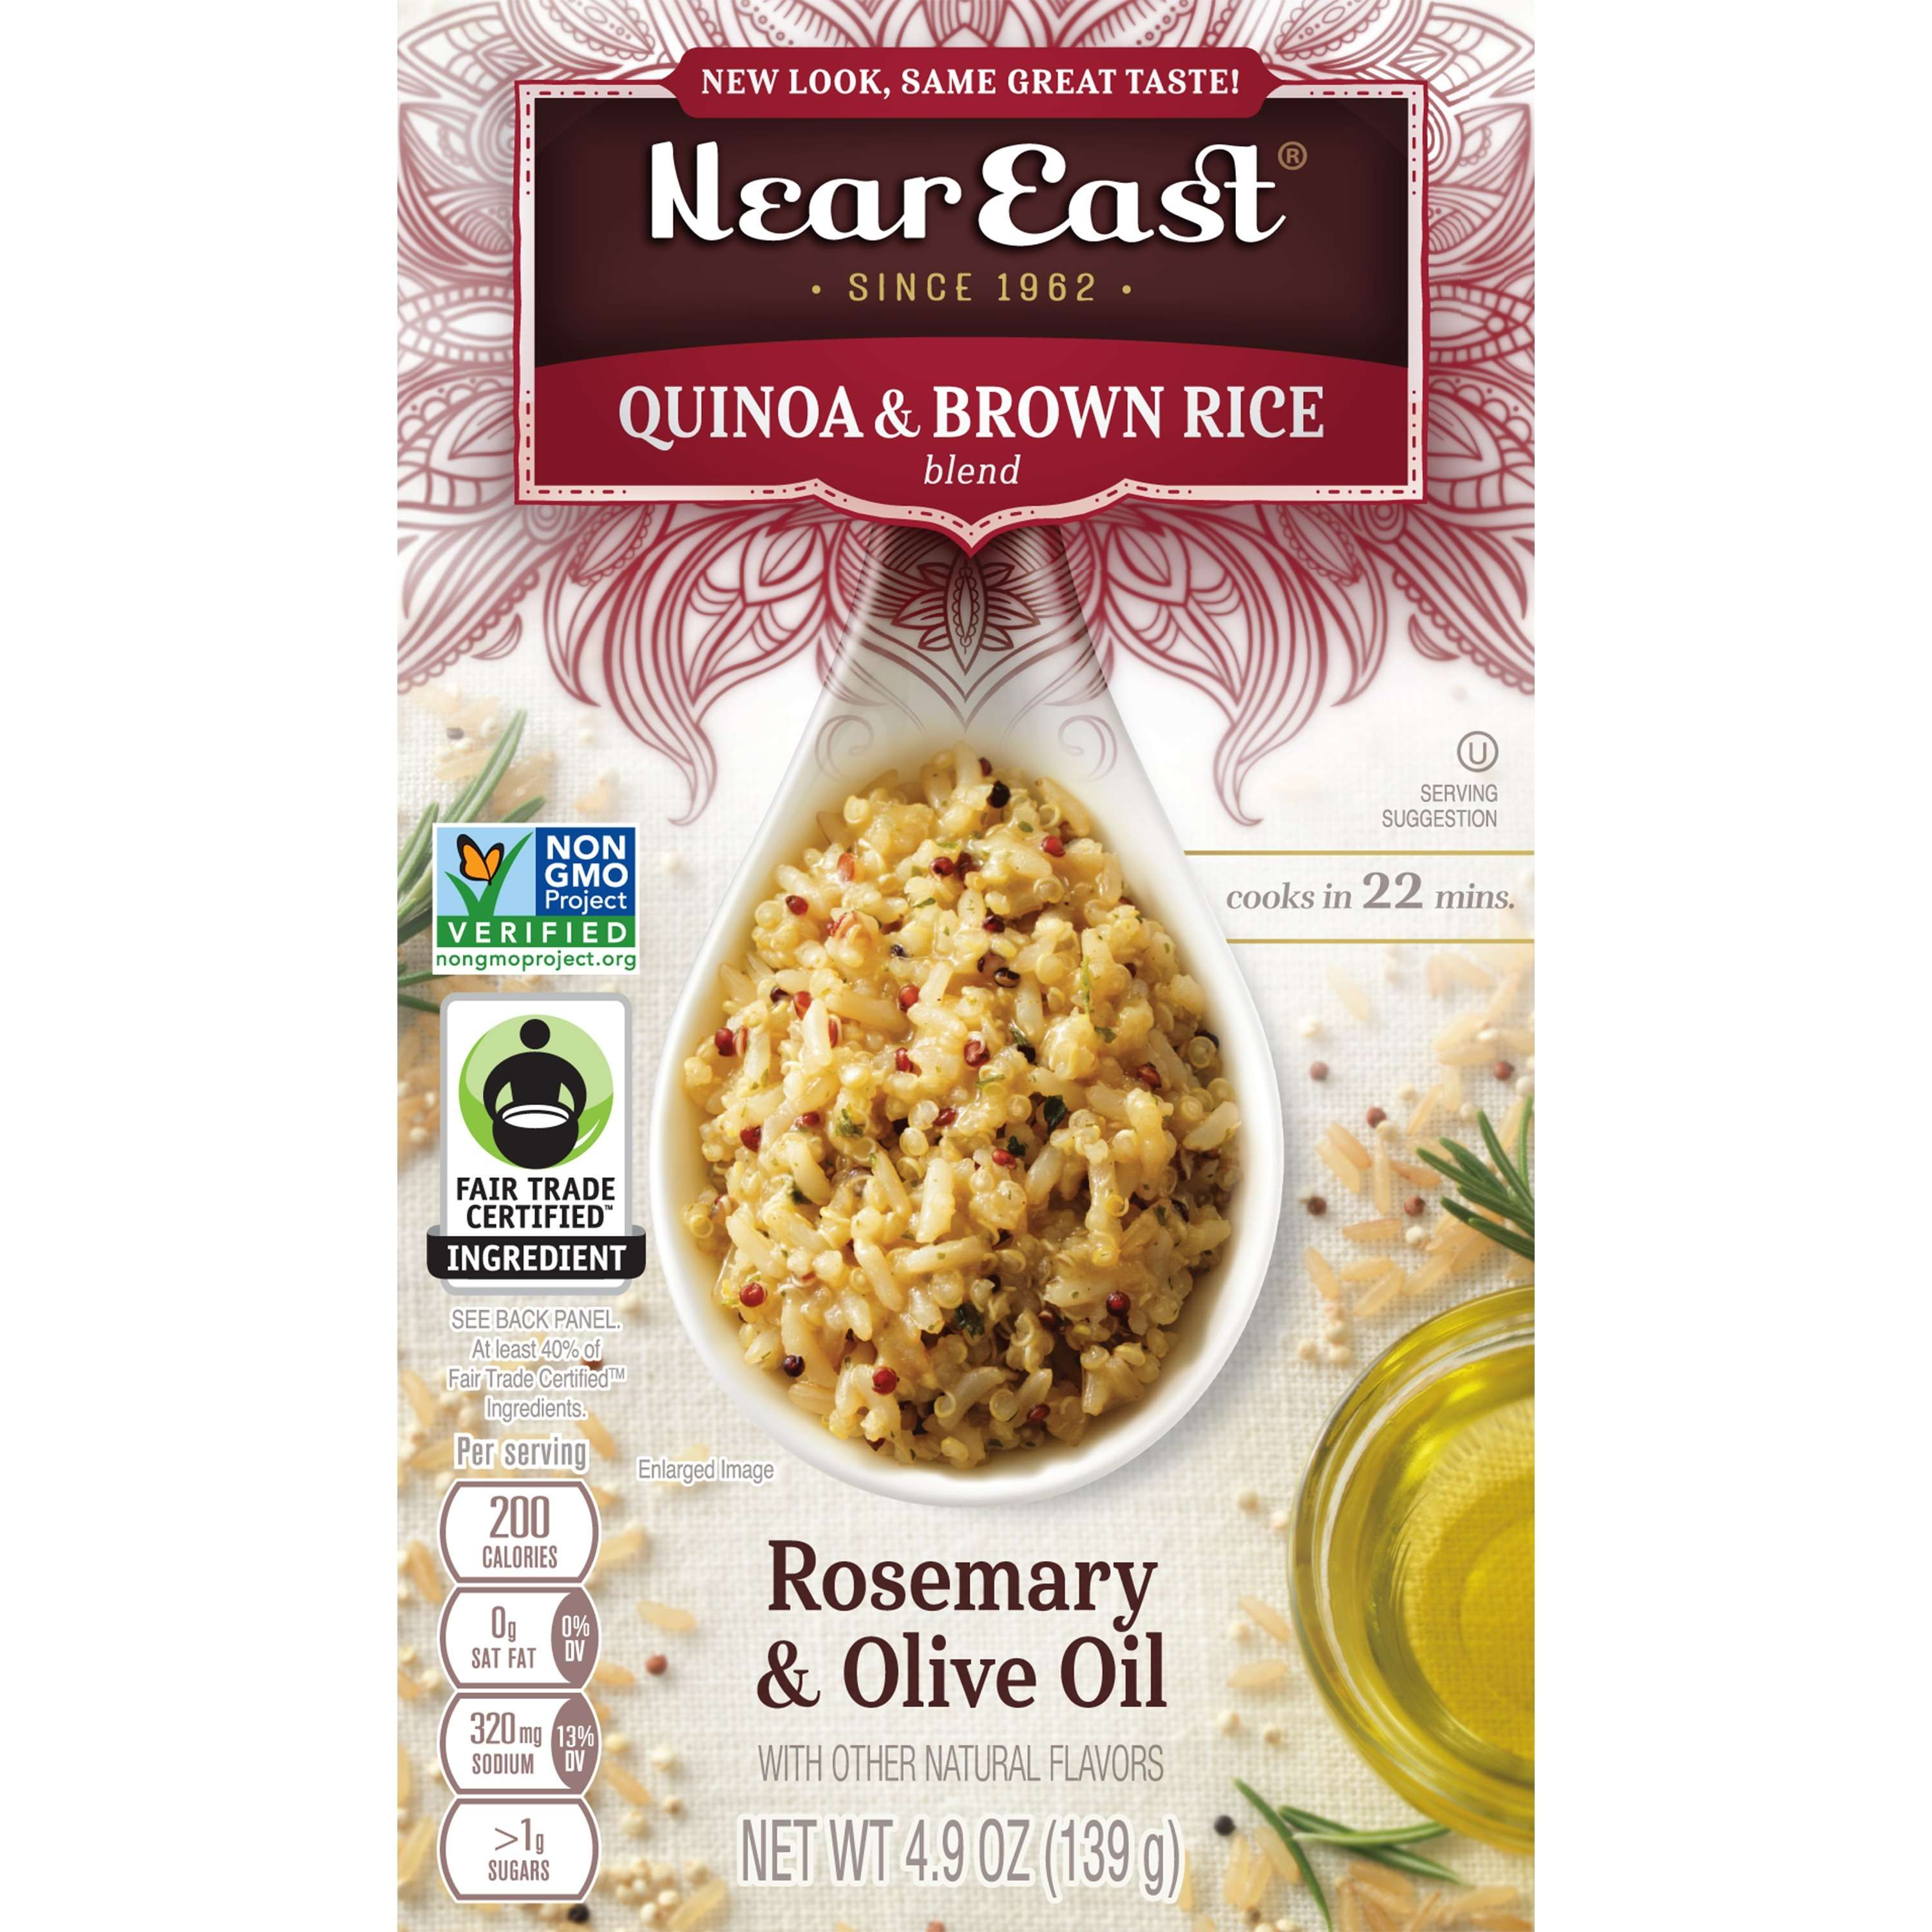 Near East Quinoa & Brown Rice Blend, Rosemary & Olive Oil, 4.9 oz Box